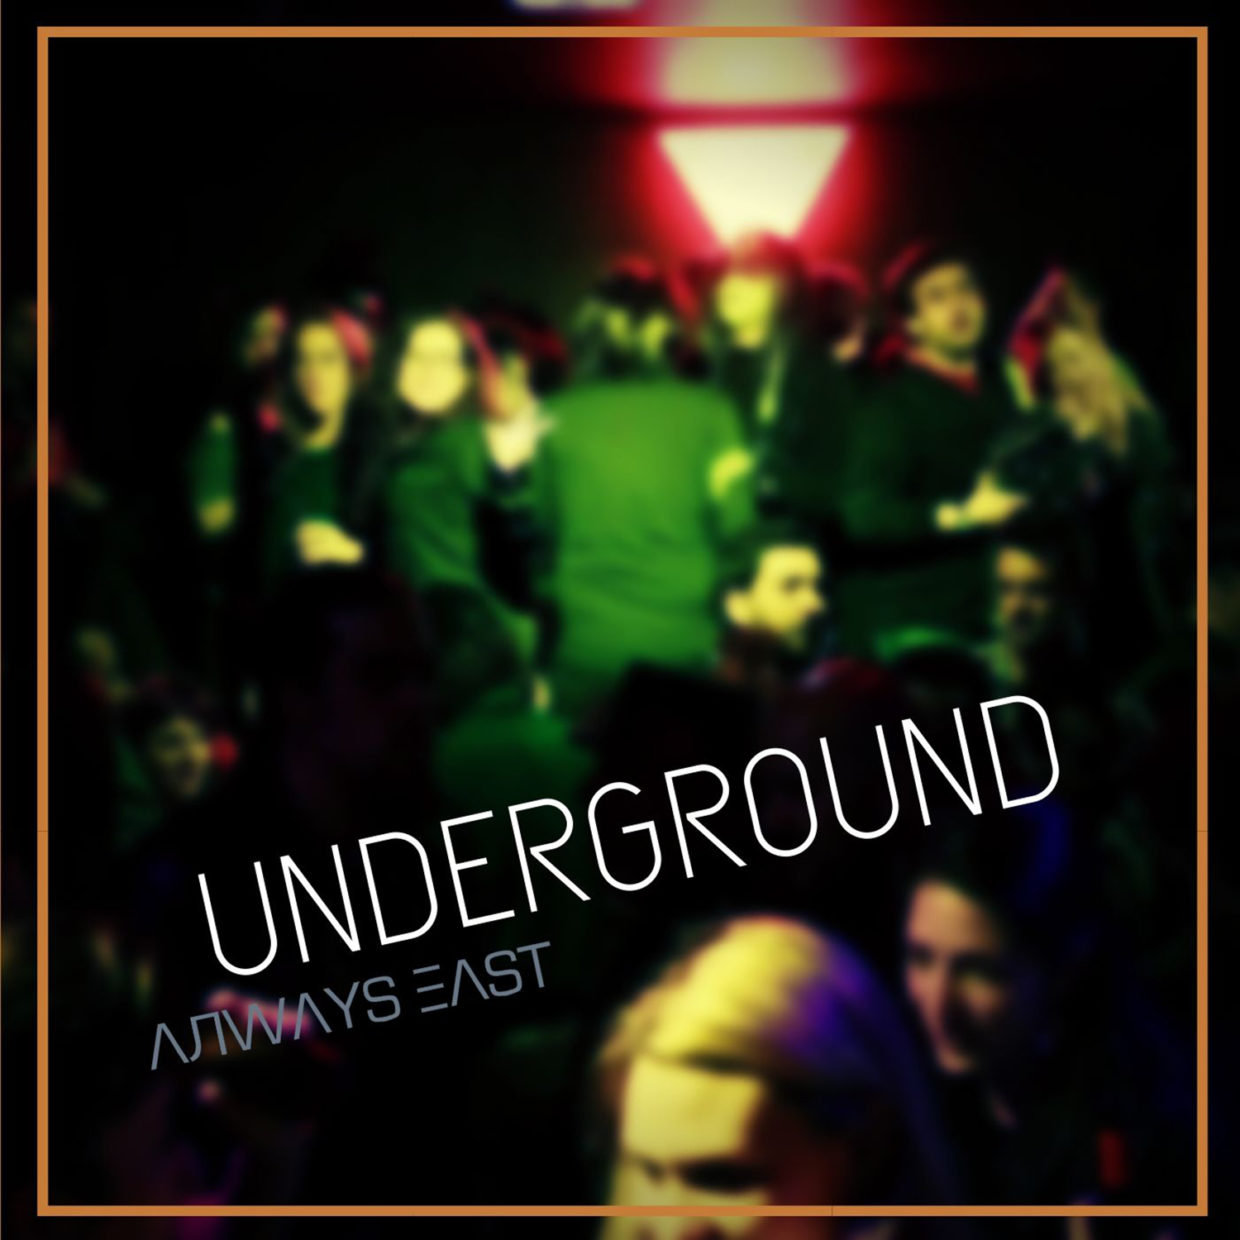 Always East Underground